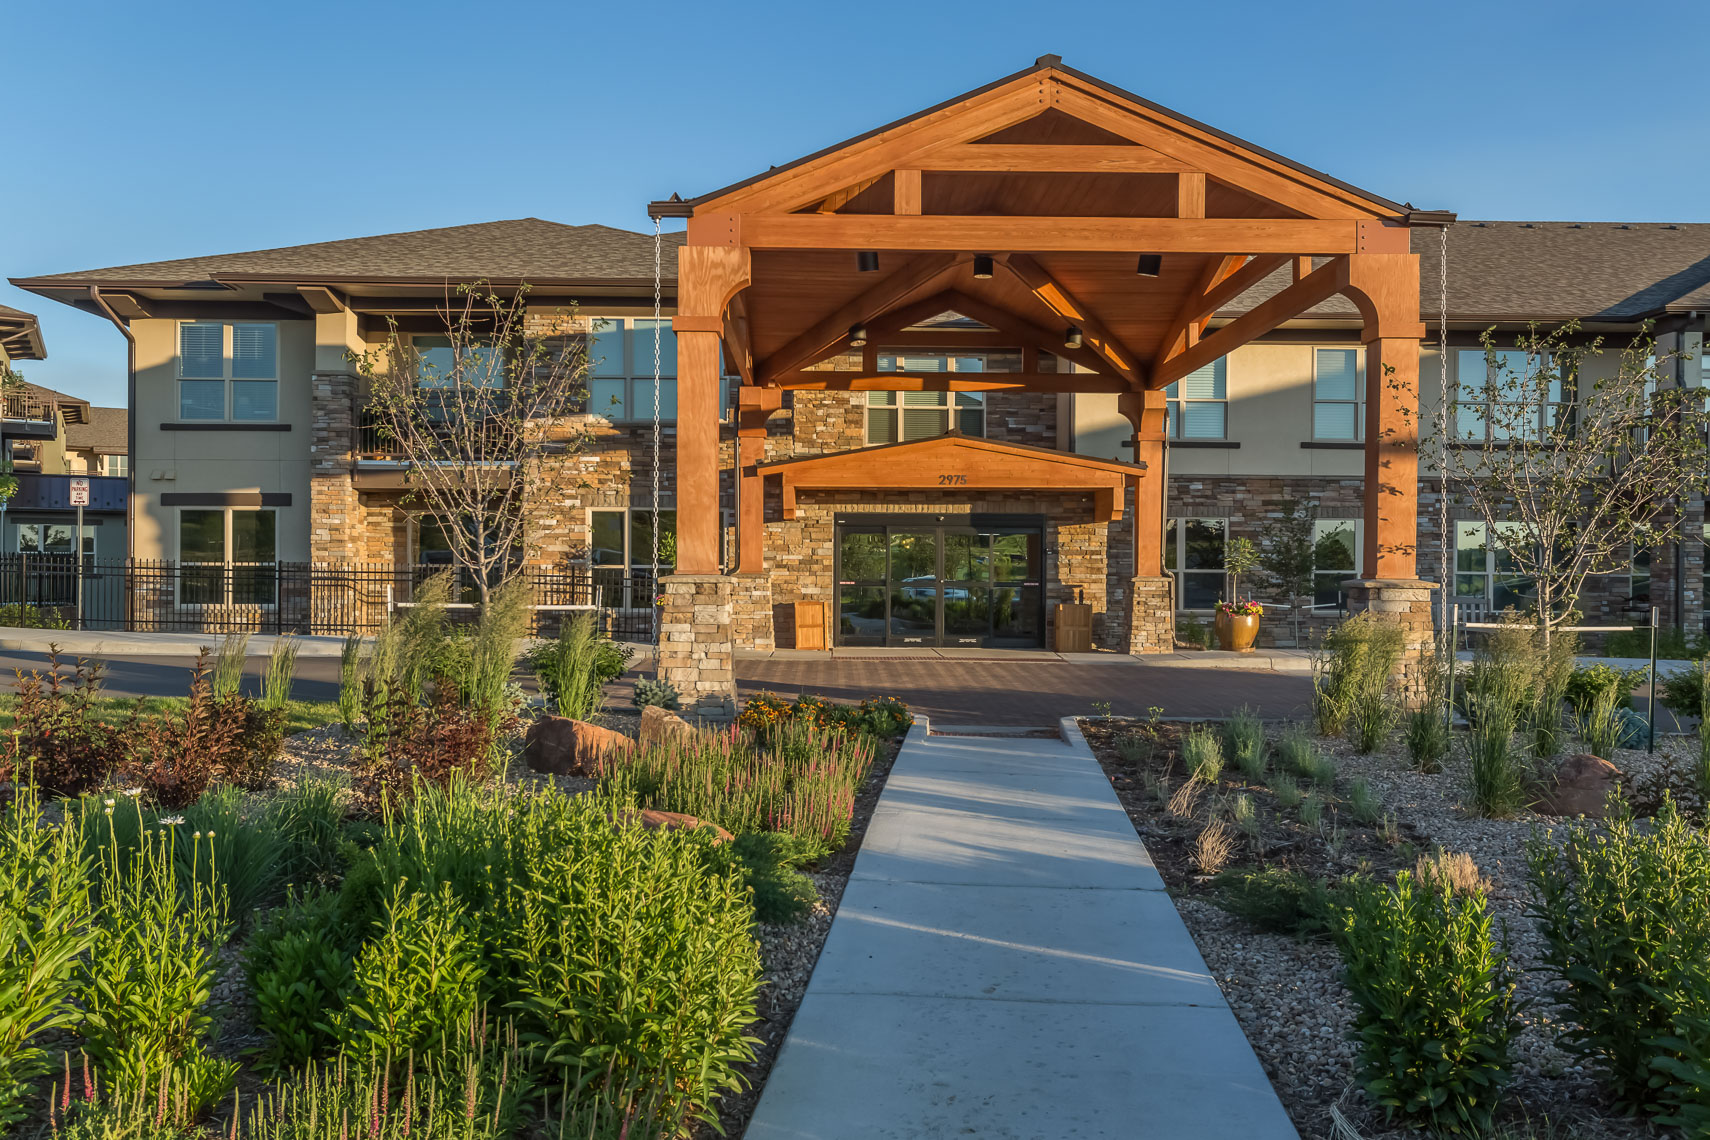 1218Wind Crest, Highlands Ranch, Colorado, entrance